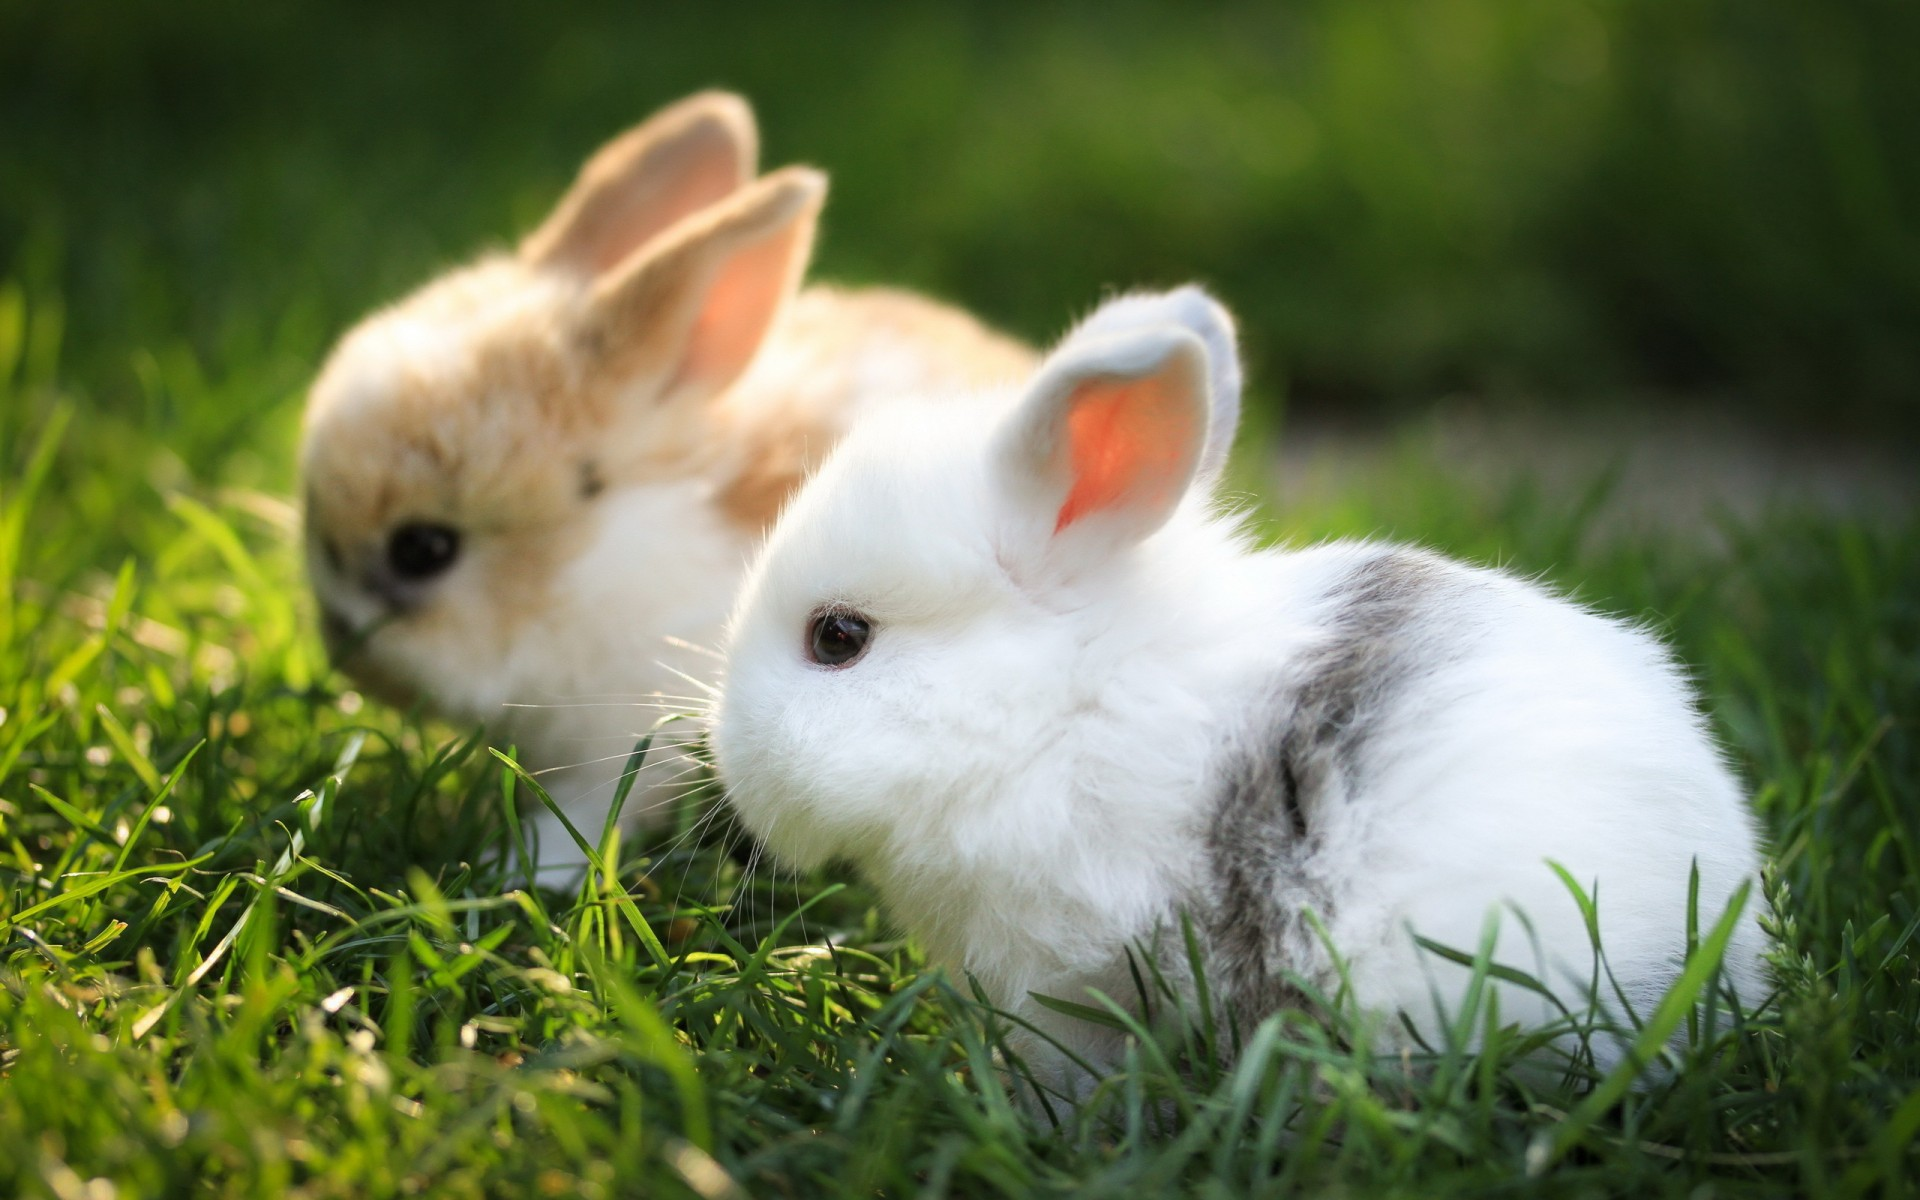 32460 download wallpaper Animals, Rabbits screensavers and pictures for free